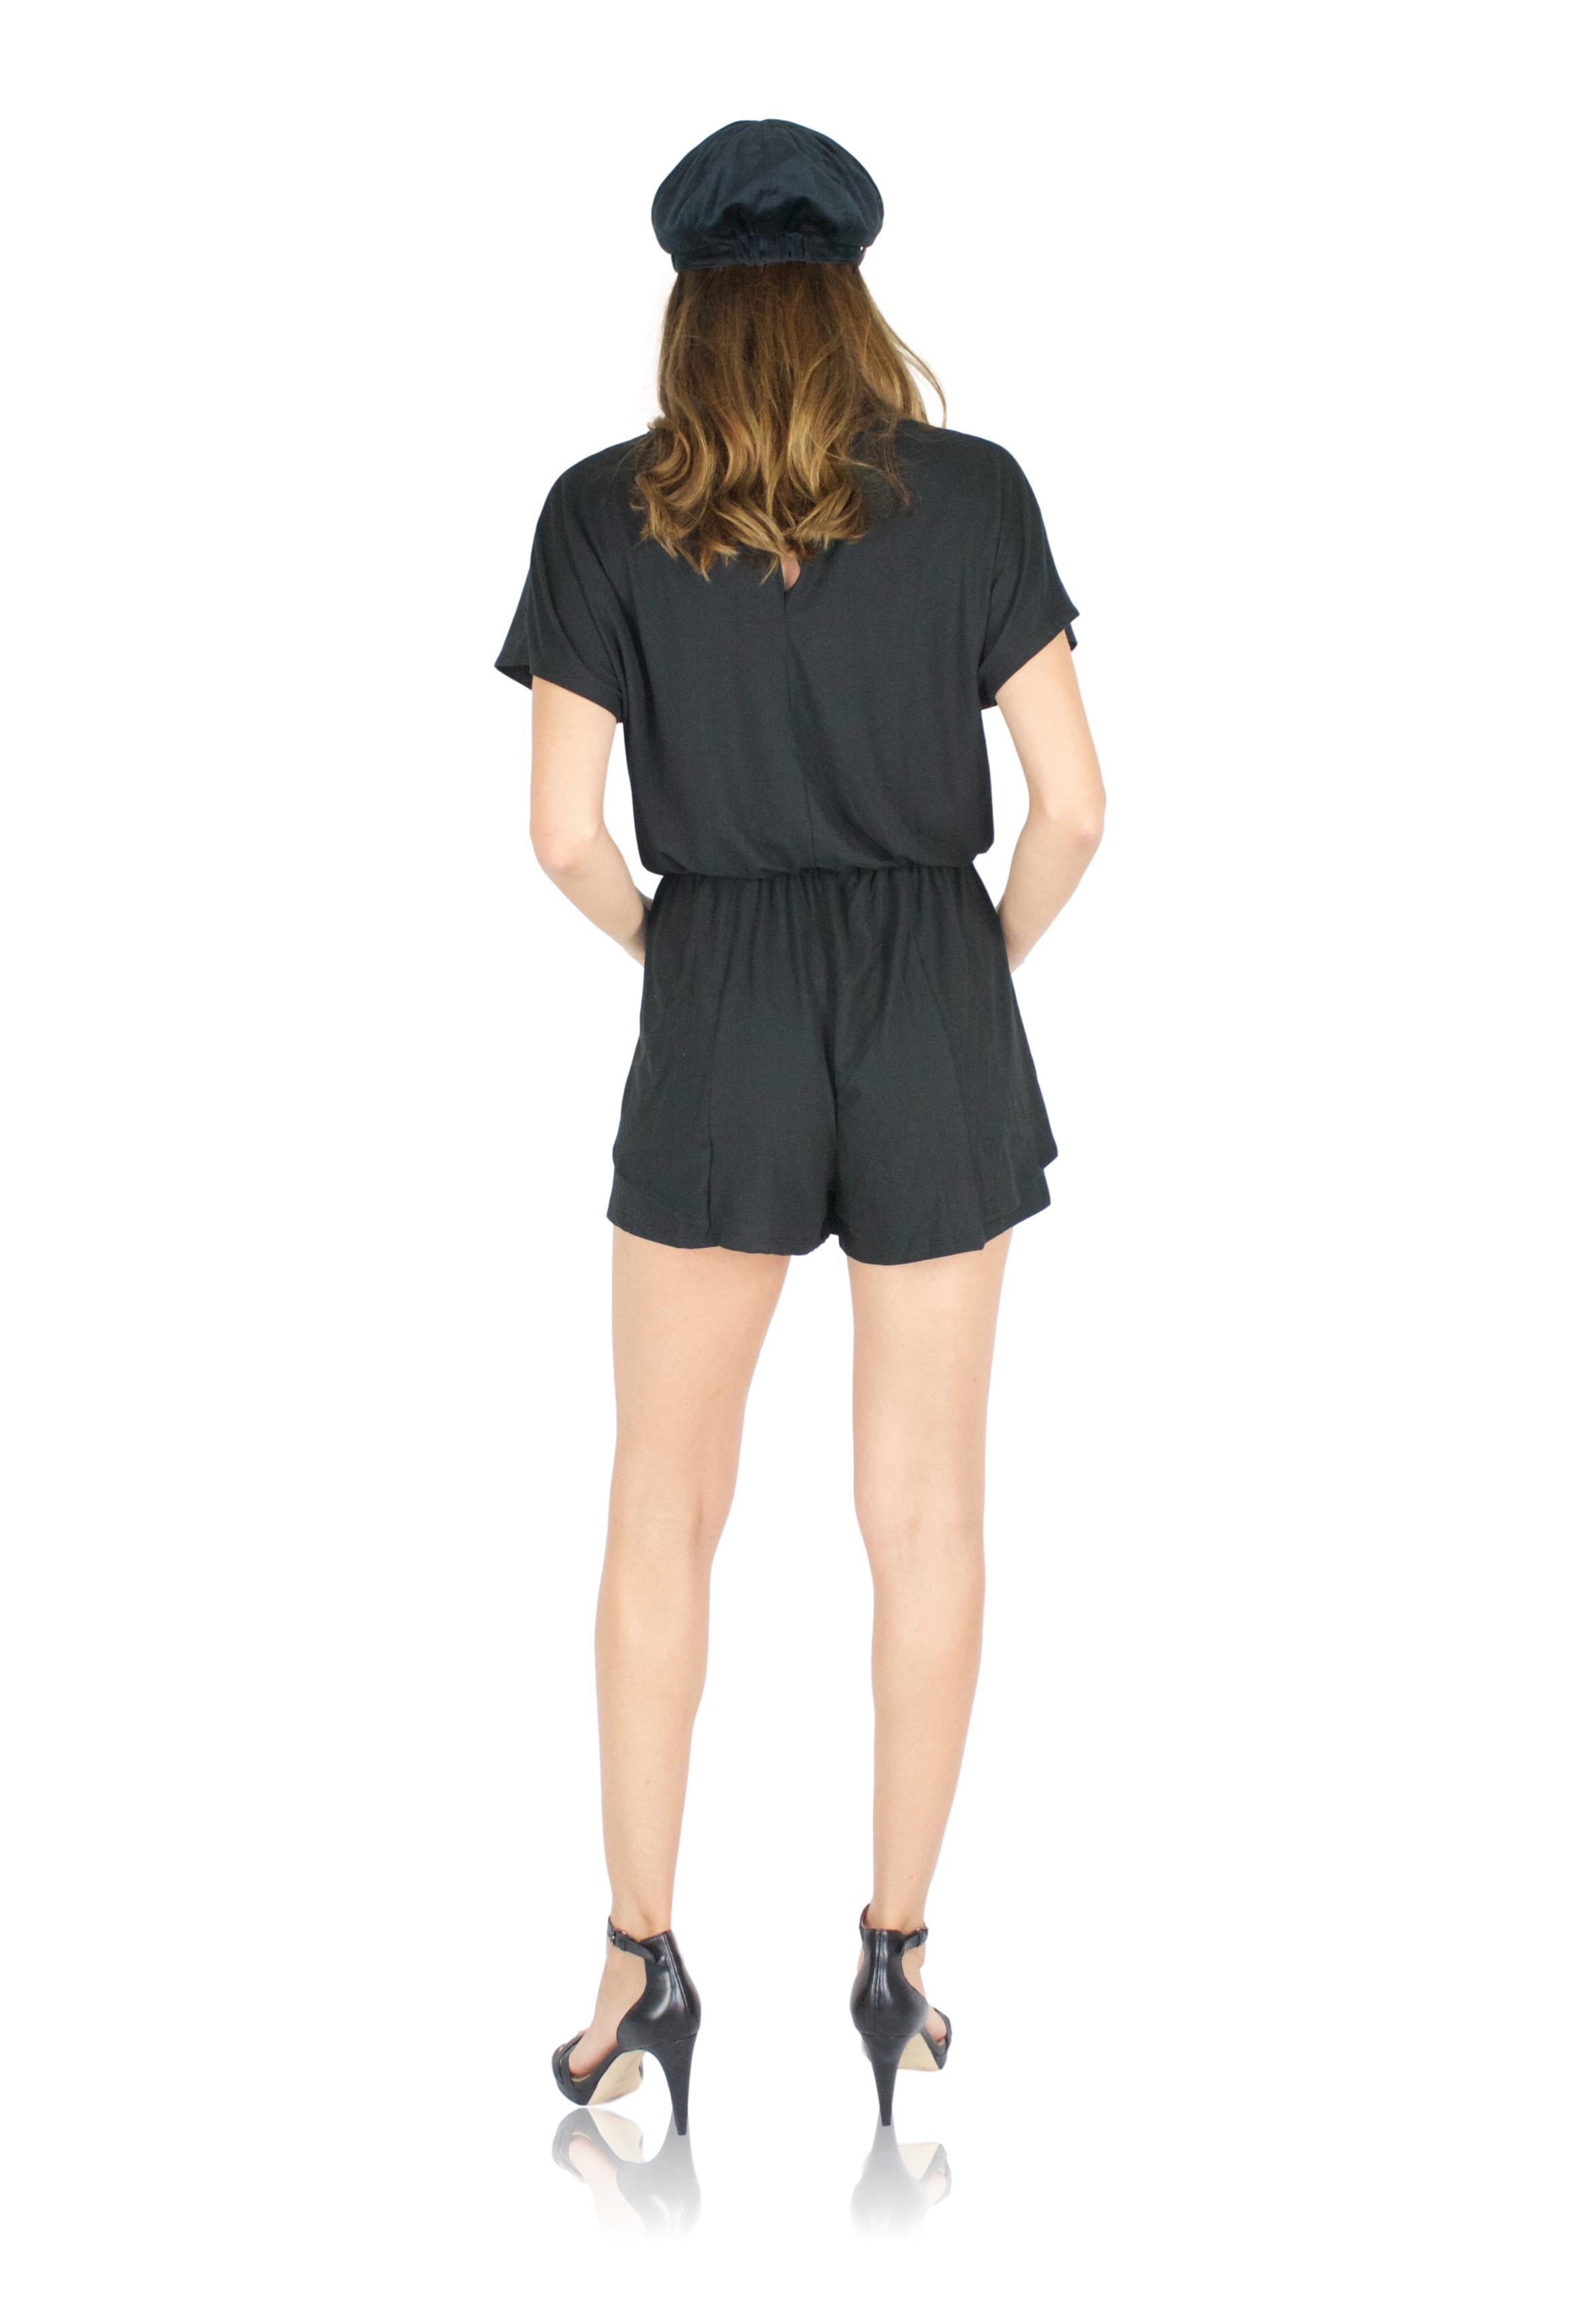 DRIFTER ROMPER IN BLACK